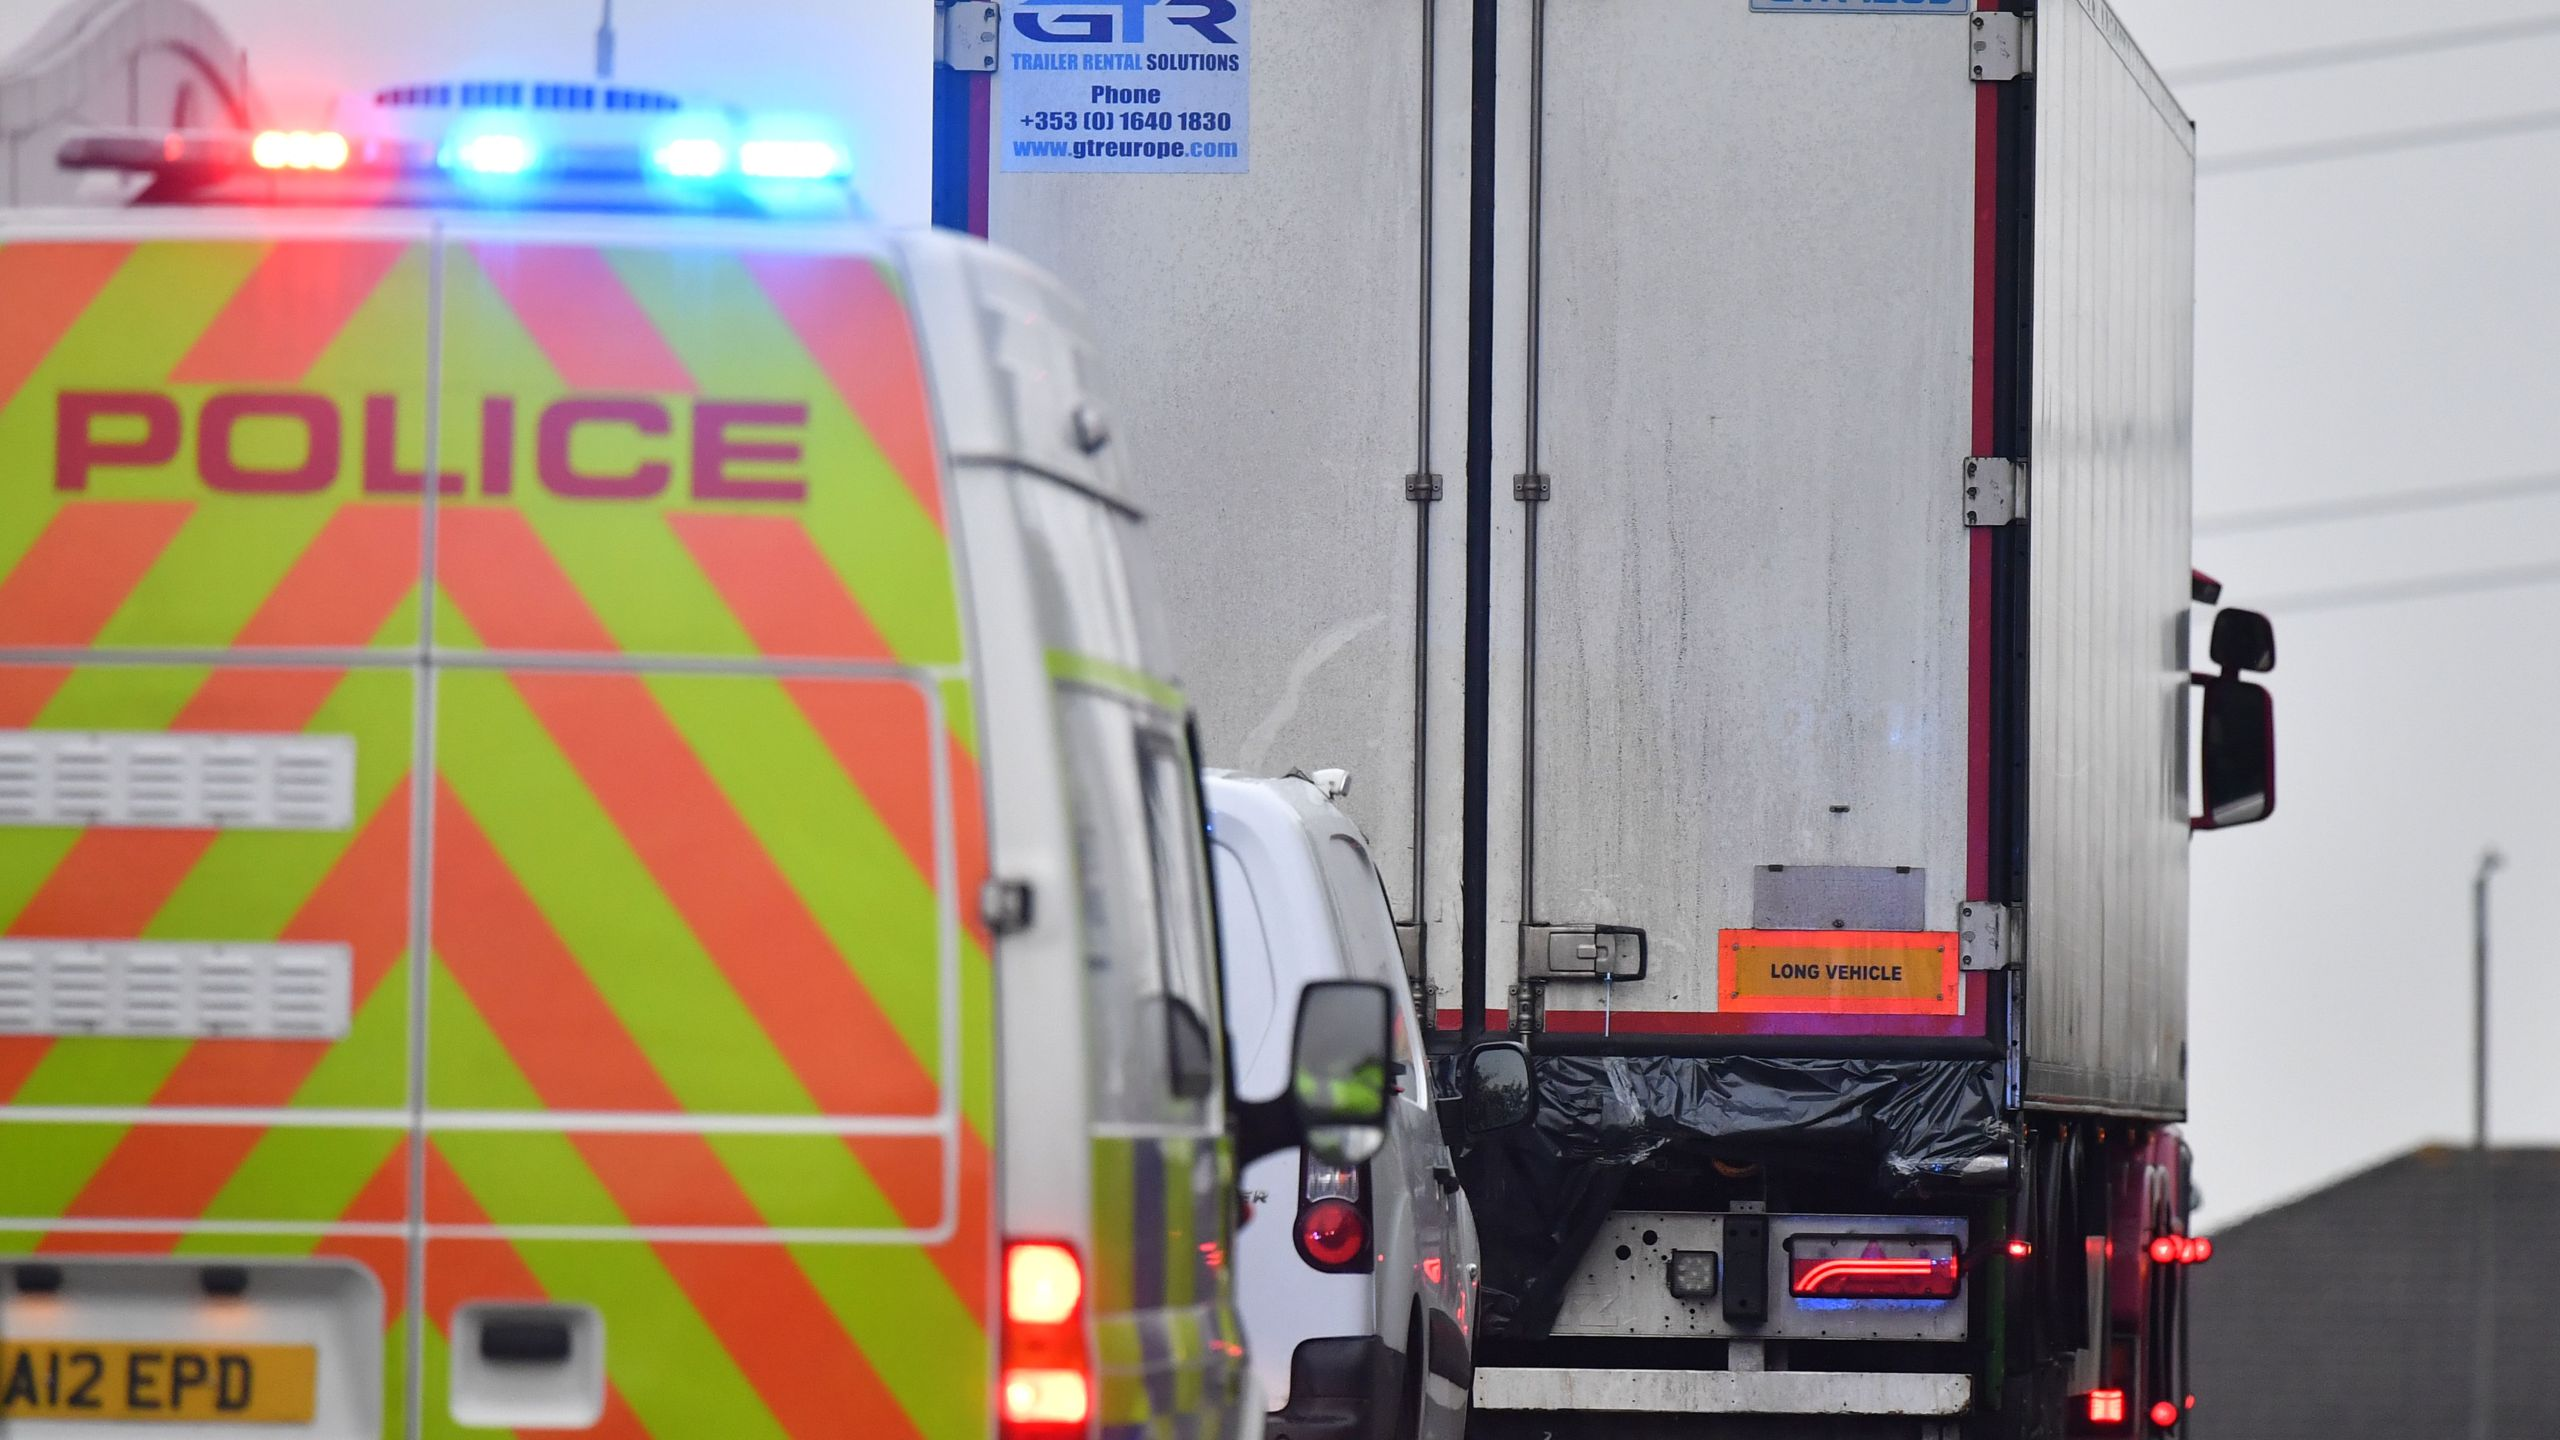 Police officers drive away a lorry, with black plastic visible at the rear, in which 39 dead bodies were discovered. It sparked a murder investigation at Waterglade Industrial Park in Grays, east of London, on Oct. 23, 2019.(Credit: BEN STANSALL/AFP via Getty Images)